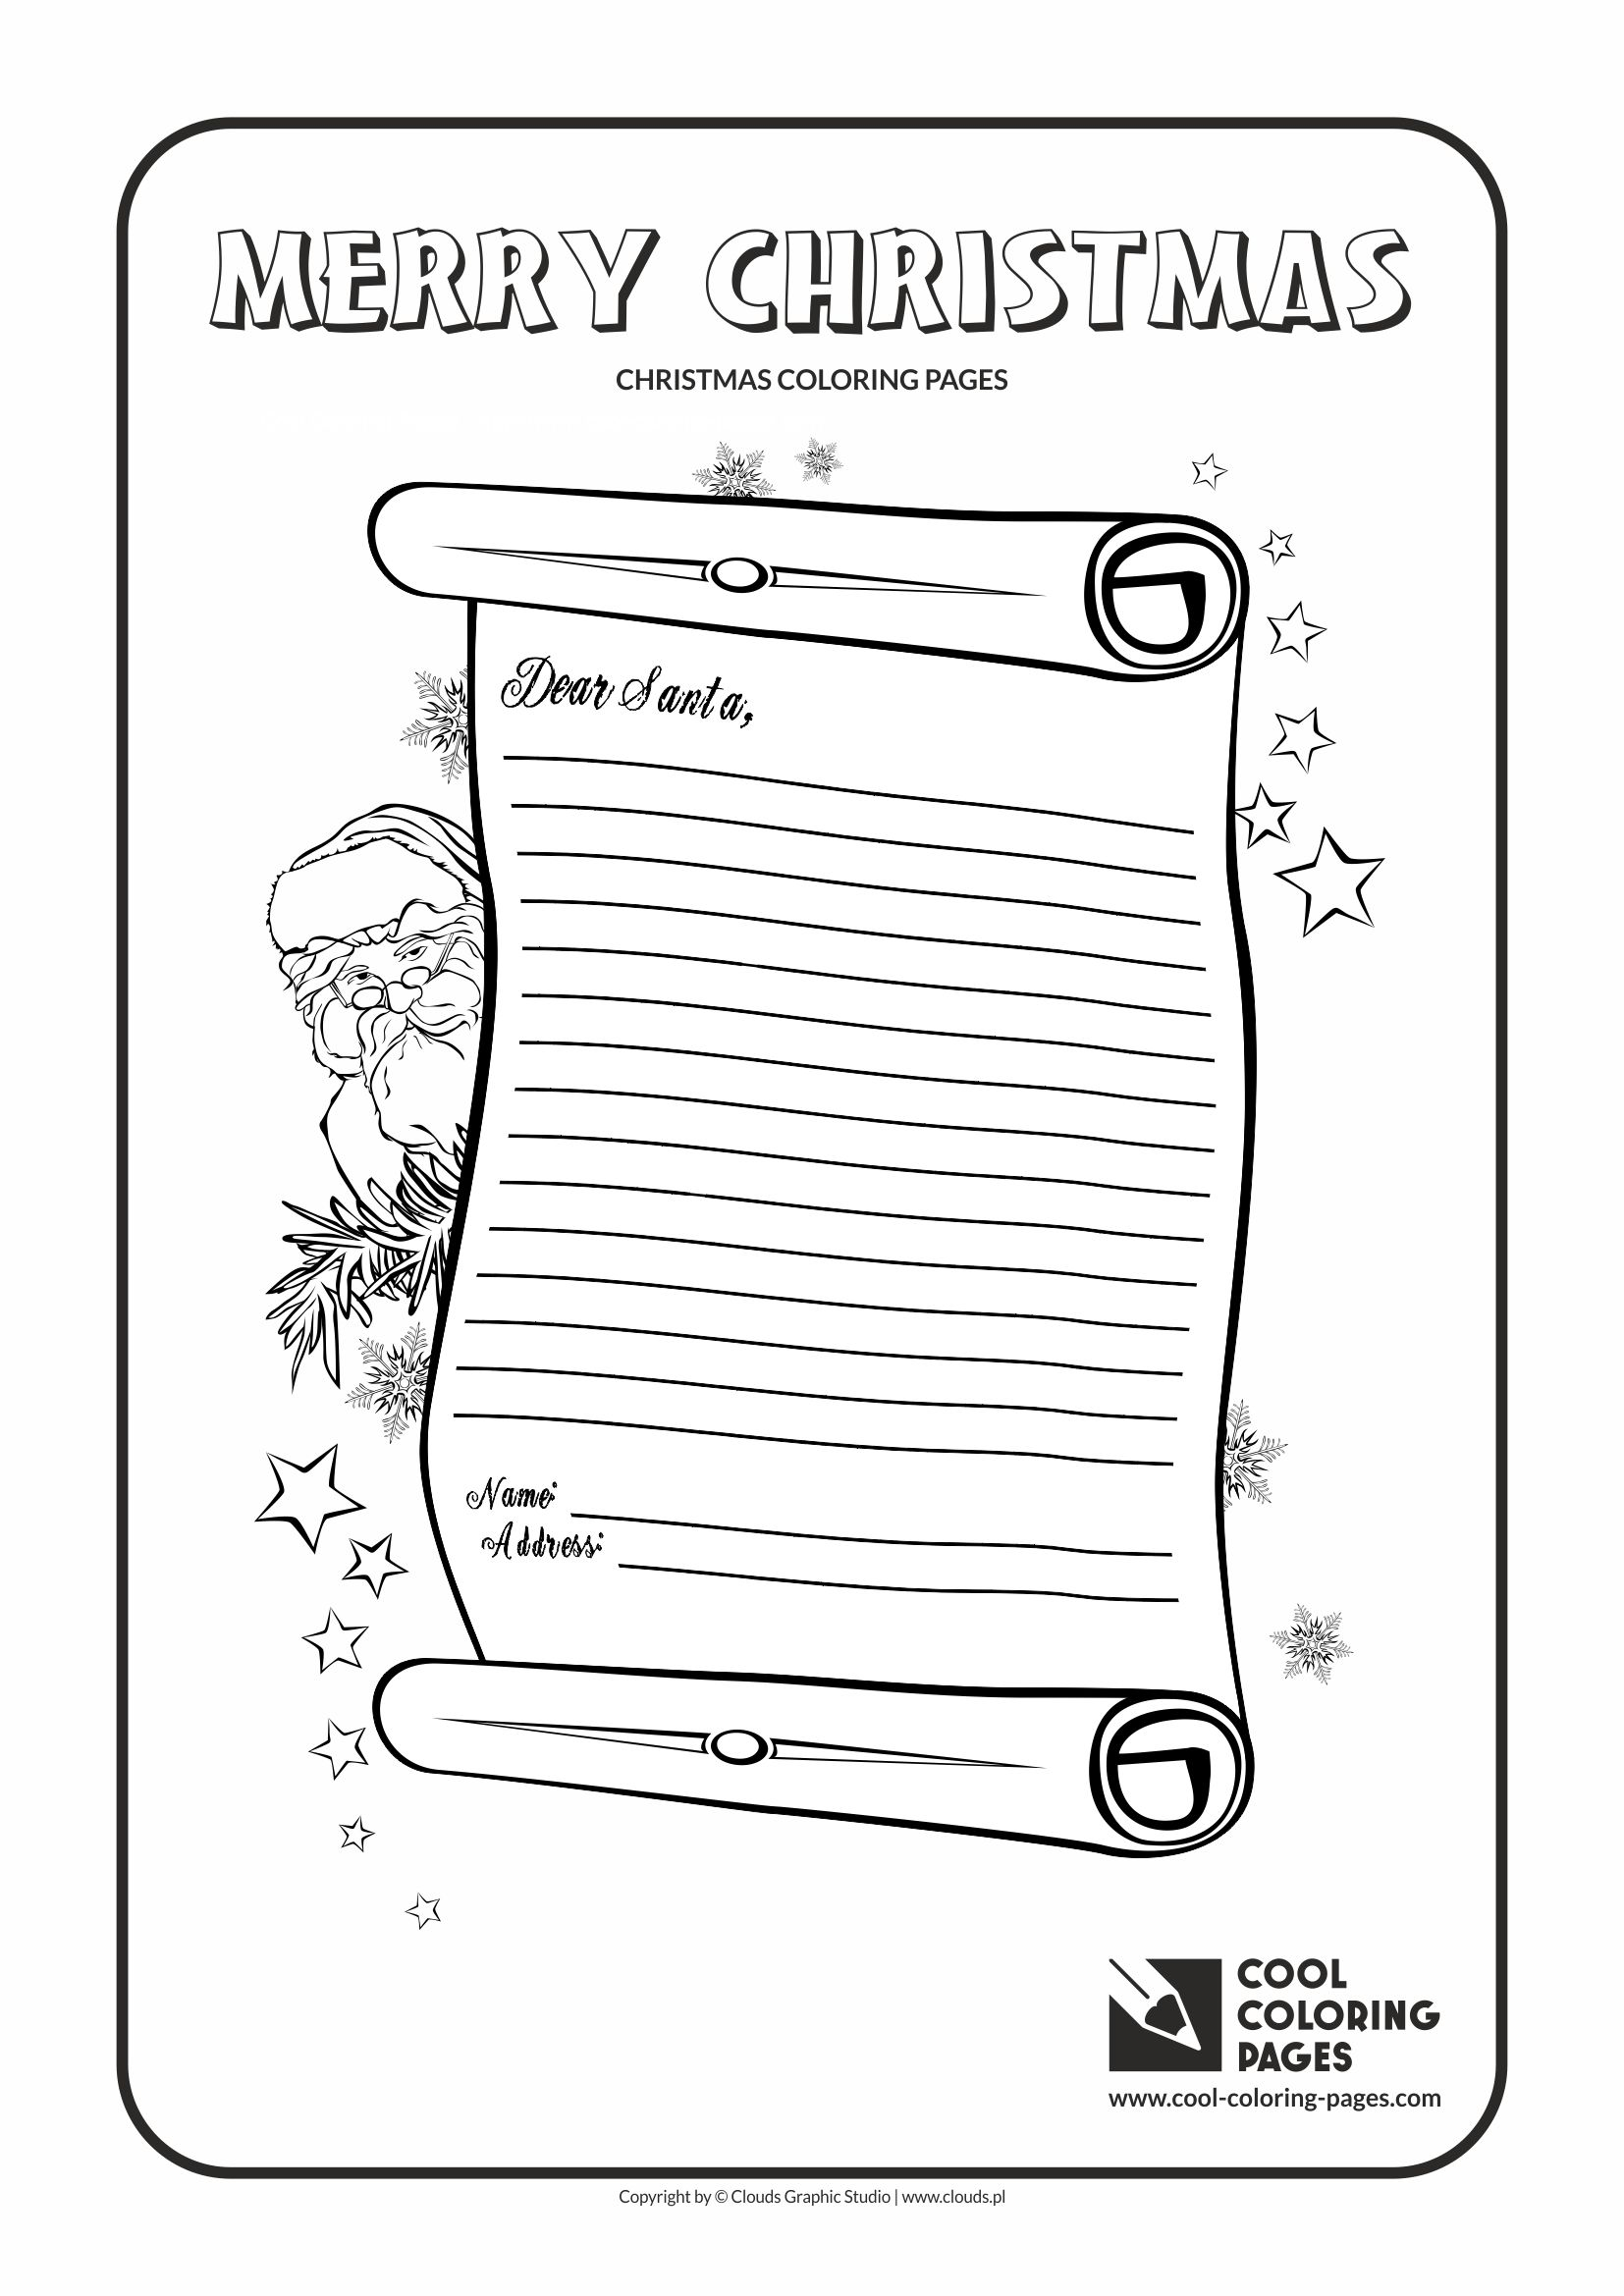 Christmas Coloring Pages Cool Coloring Pages Letter To Santa Coloring Page